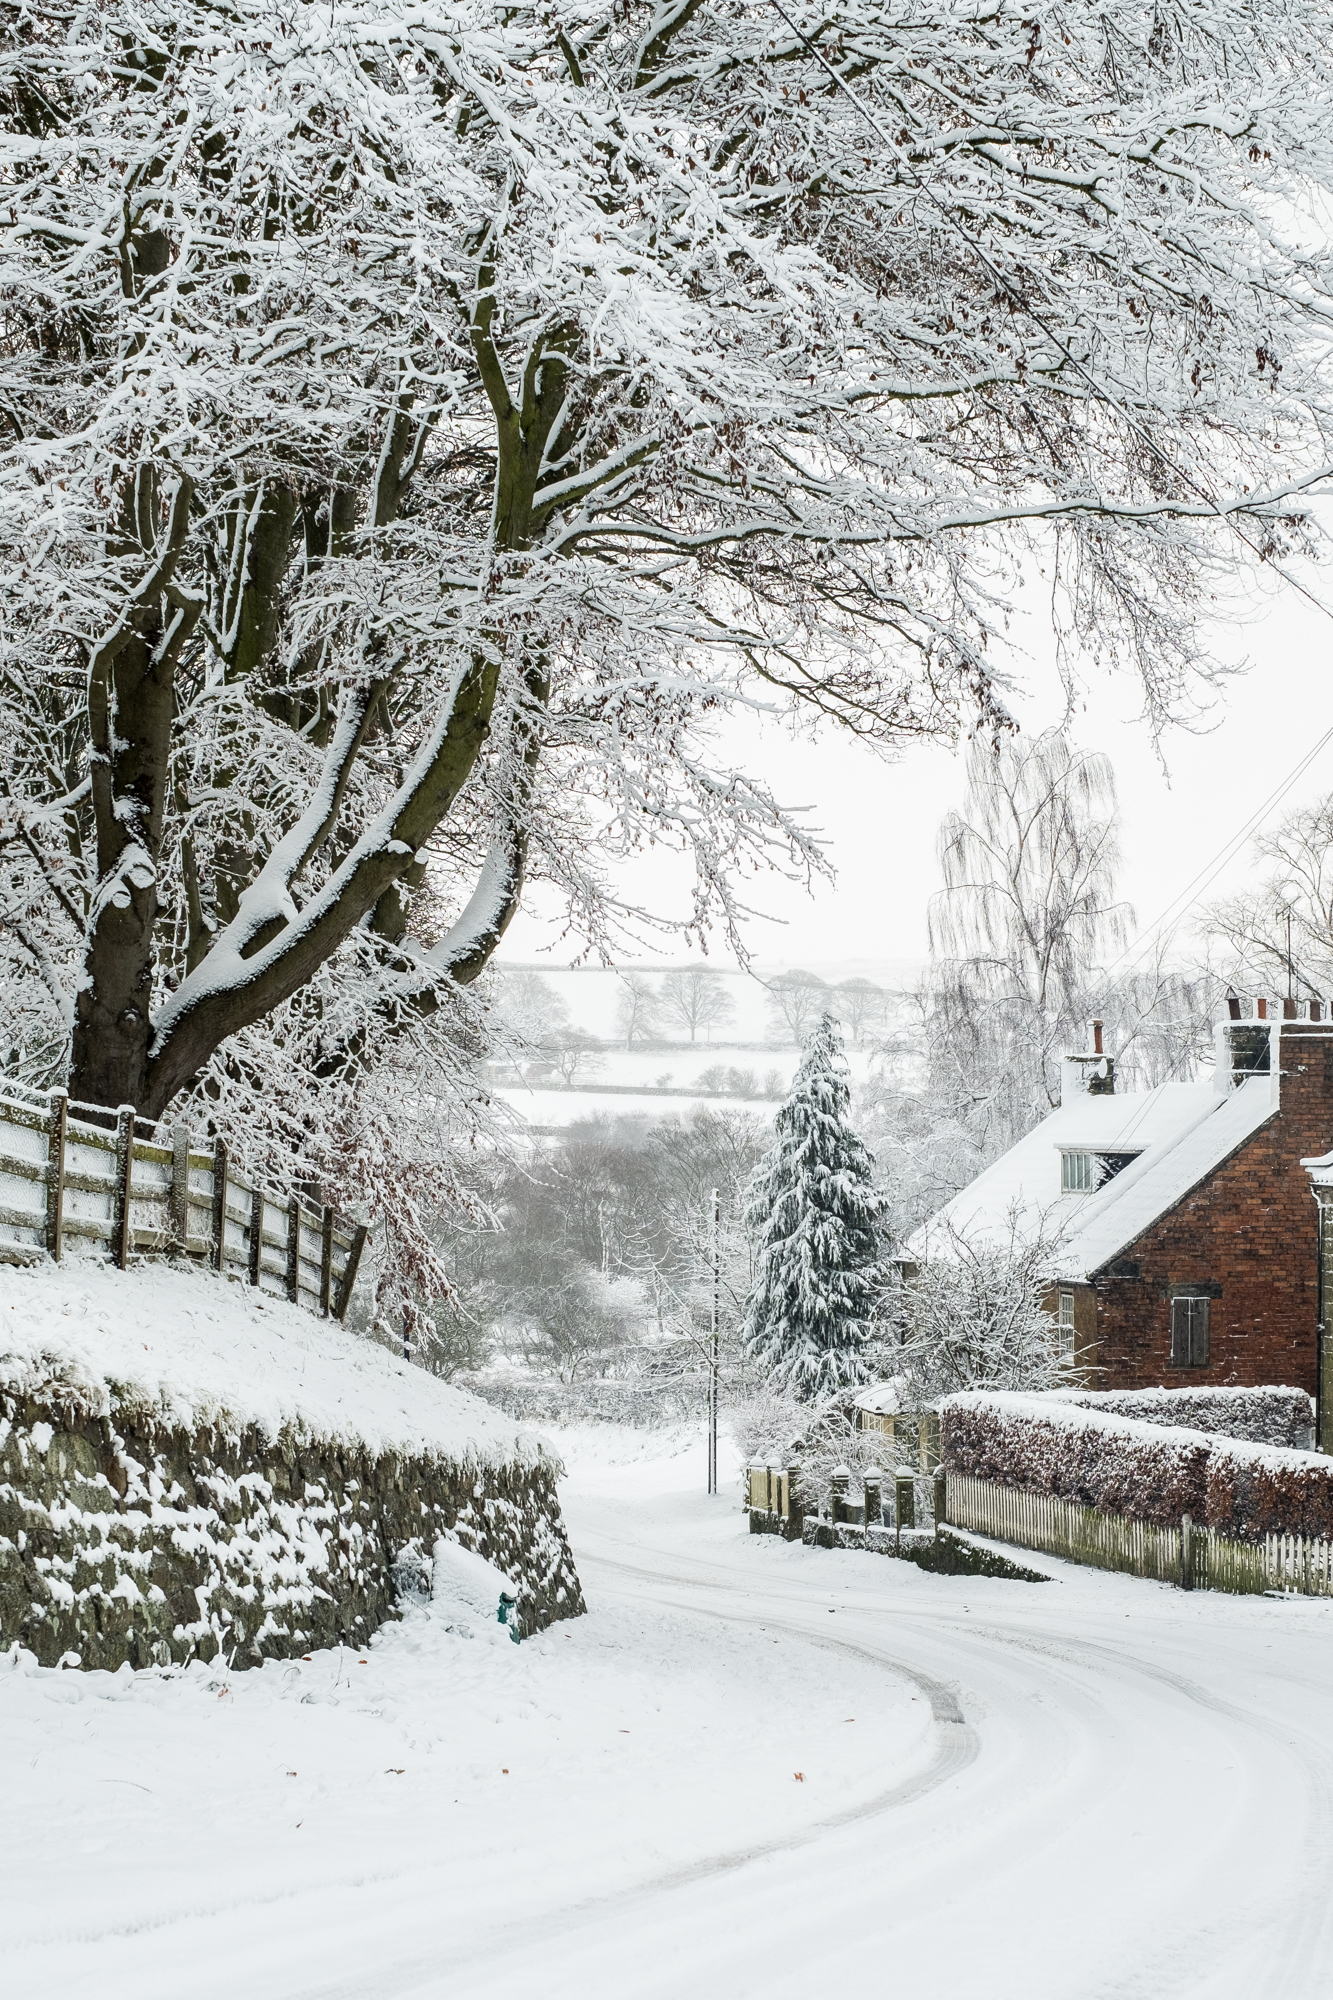 Snow At Ainthorpe, Danby - A5 Christmas Card - Whitby Photography